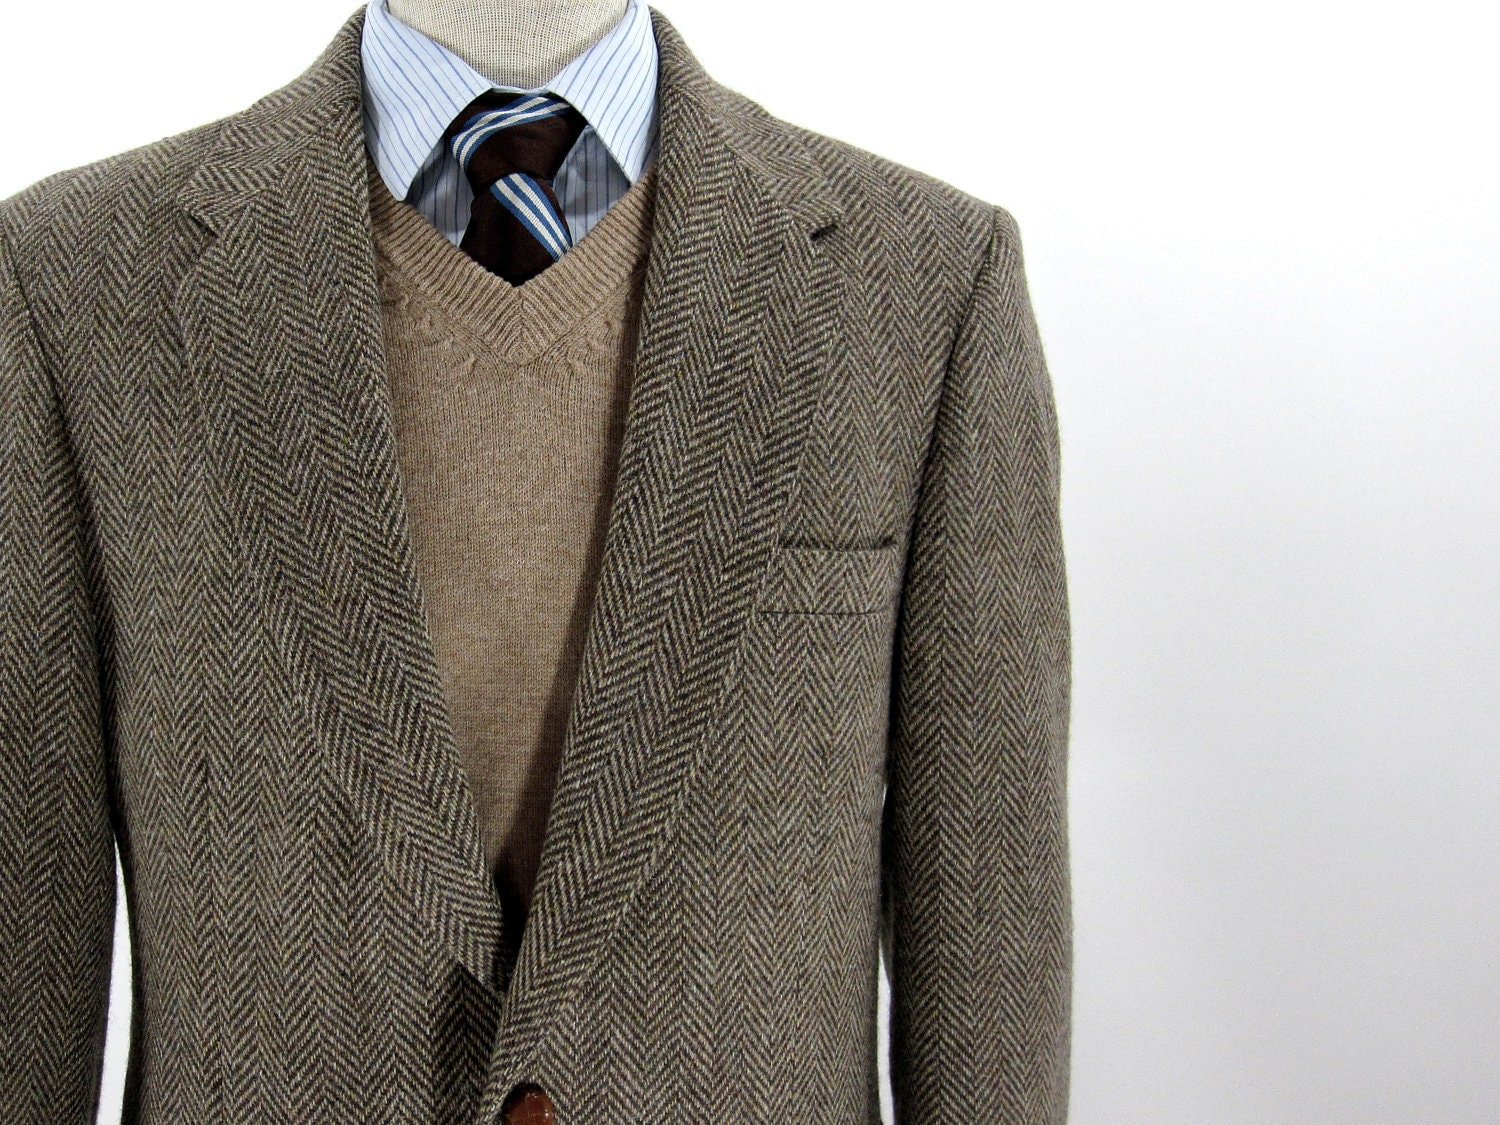 Orvis / Men's Clothing / Jackets & Vests / Sport Coats / Men's Sport Coats: Save $50 when you buy 2 Wrinkle-Free shirts! Stay warm throughout the season in this Highland Tweed Sport Coat. Details. The approach to creating our signature Highland Tweed was simple: Create a versatile fabric with a timeless color palette that fends off autumn.